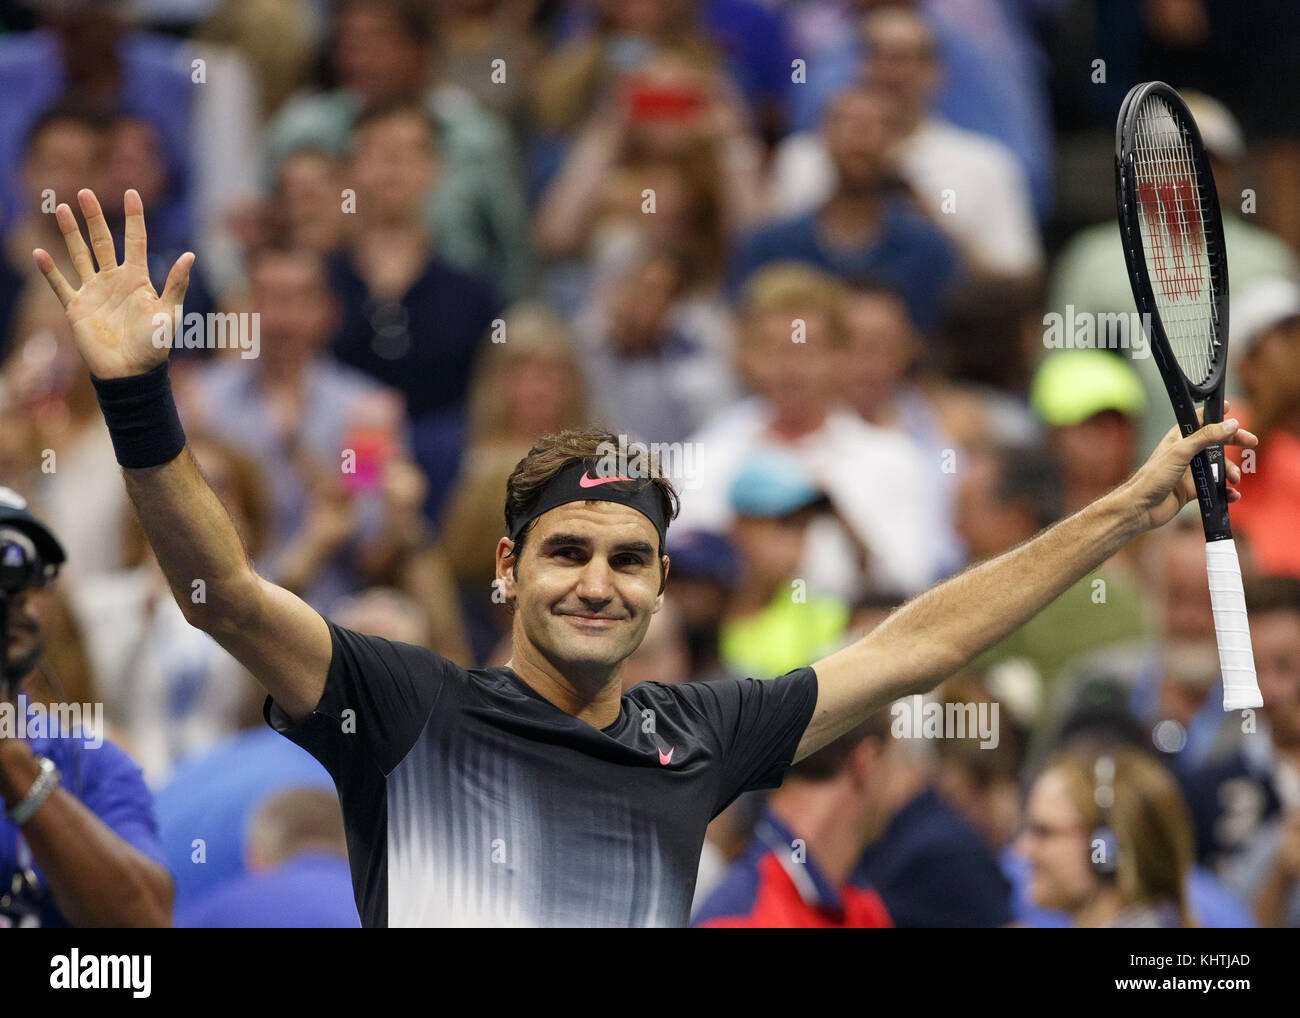 Swiss tennis player ROGER FEDERER (SUI) celebrates at US Open 2017 Tennis Championship, New York City, New York Stock Photo